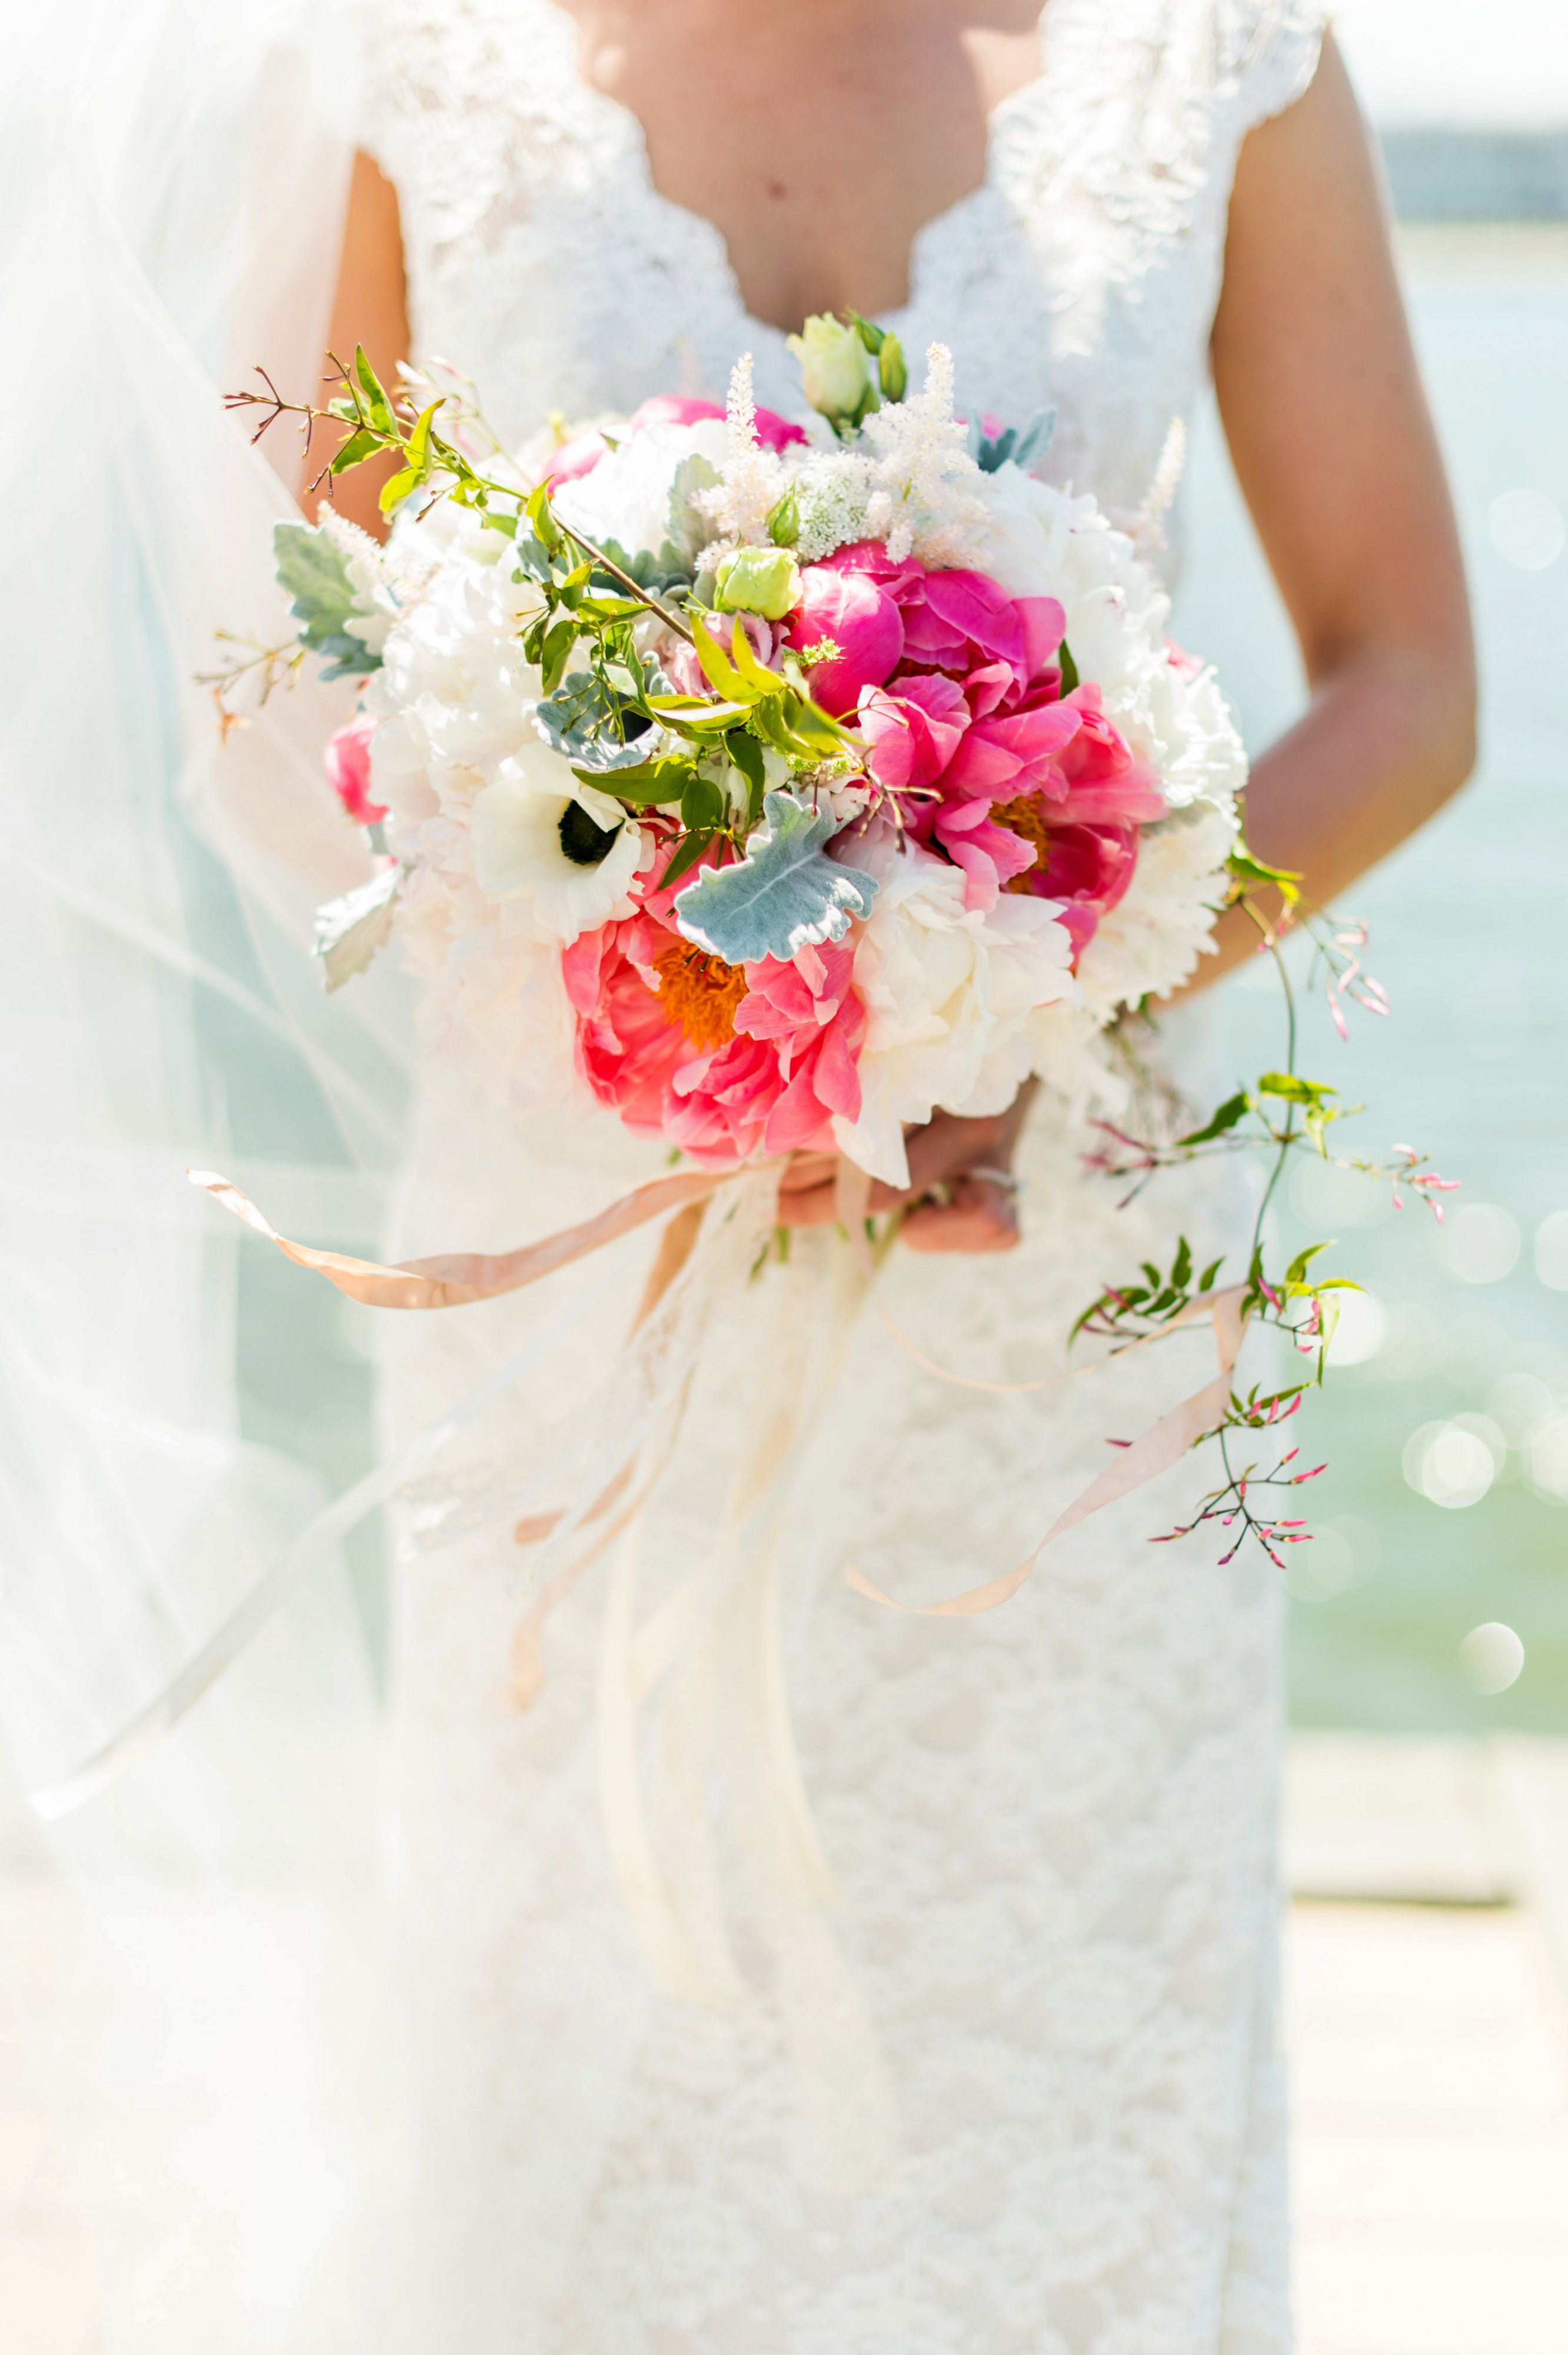 Bride S Bright And Beachy Bouquet At Sunset Ballroom At Chesapeake Bay Beach Club Flowers Http Intr With Images Pastel Wedding Wedding Flowers Chesapeake Bay Beach Club